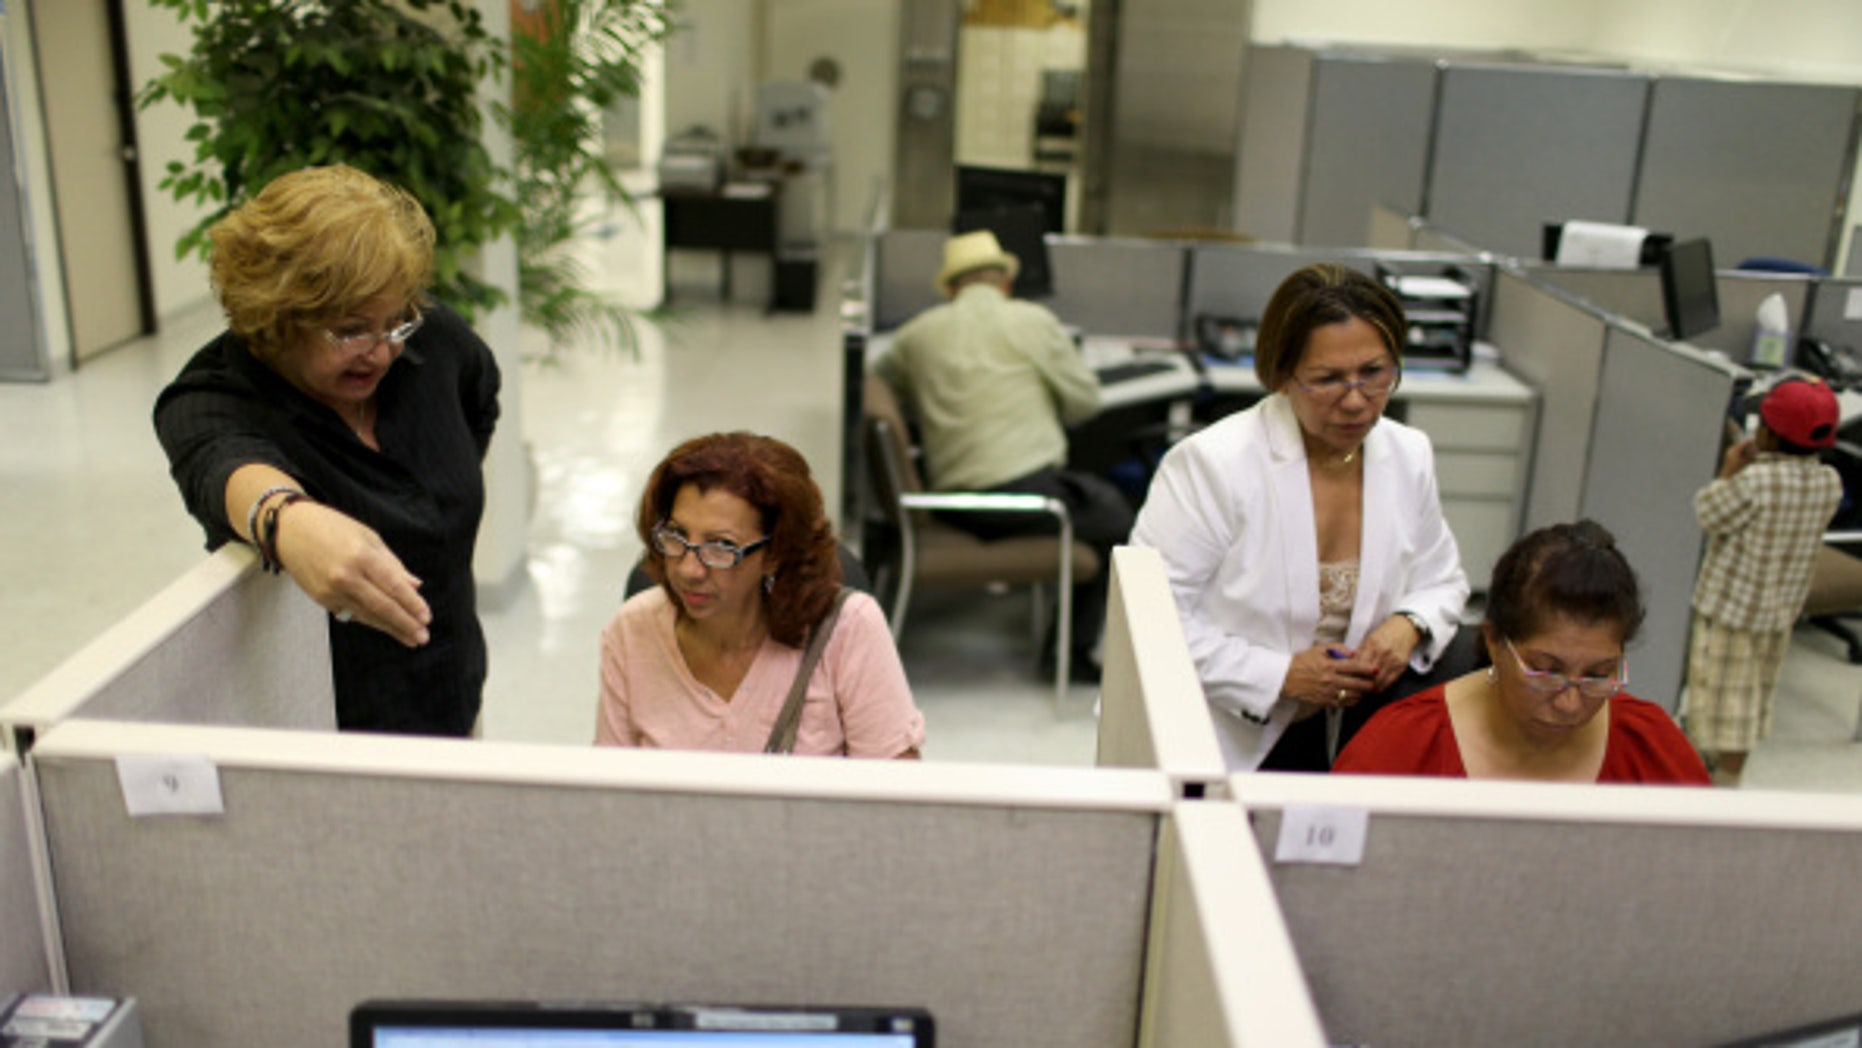 MIAMI, FL - AUGUST 01: Raisa Alvarez (L) helps Ana Celeste Reynoso as Maria Tutiven (2nd R) helps Idali Valasquez as they look for job opportunities on the computers at CareerSource Florida on August 1, 2014 in Miami, Florida. The Labor Department announced that U.S. employers added 209,000 new jobs in July and that the unemployment rate edged up to 6.2 percent as more workers joined the labor force.  (Photo by Joe Raedle/Getty Images)